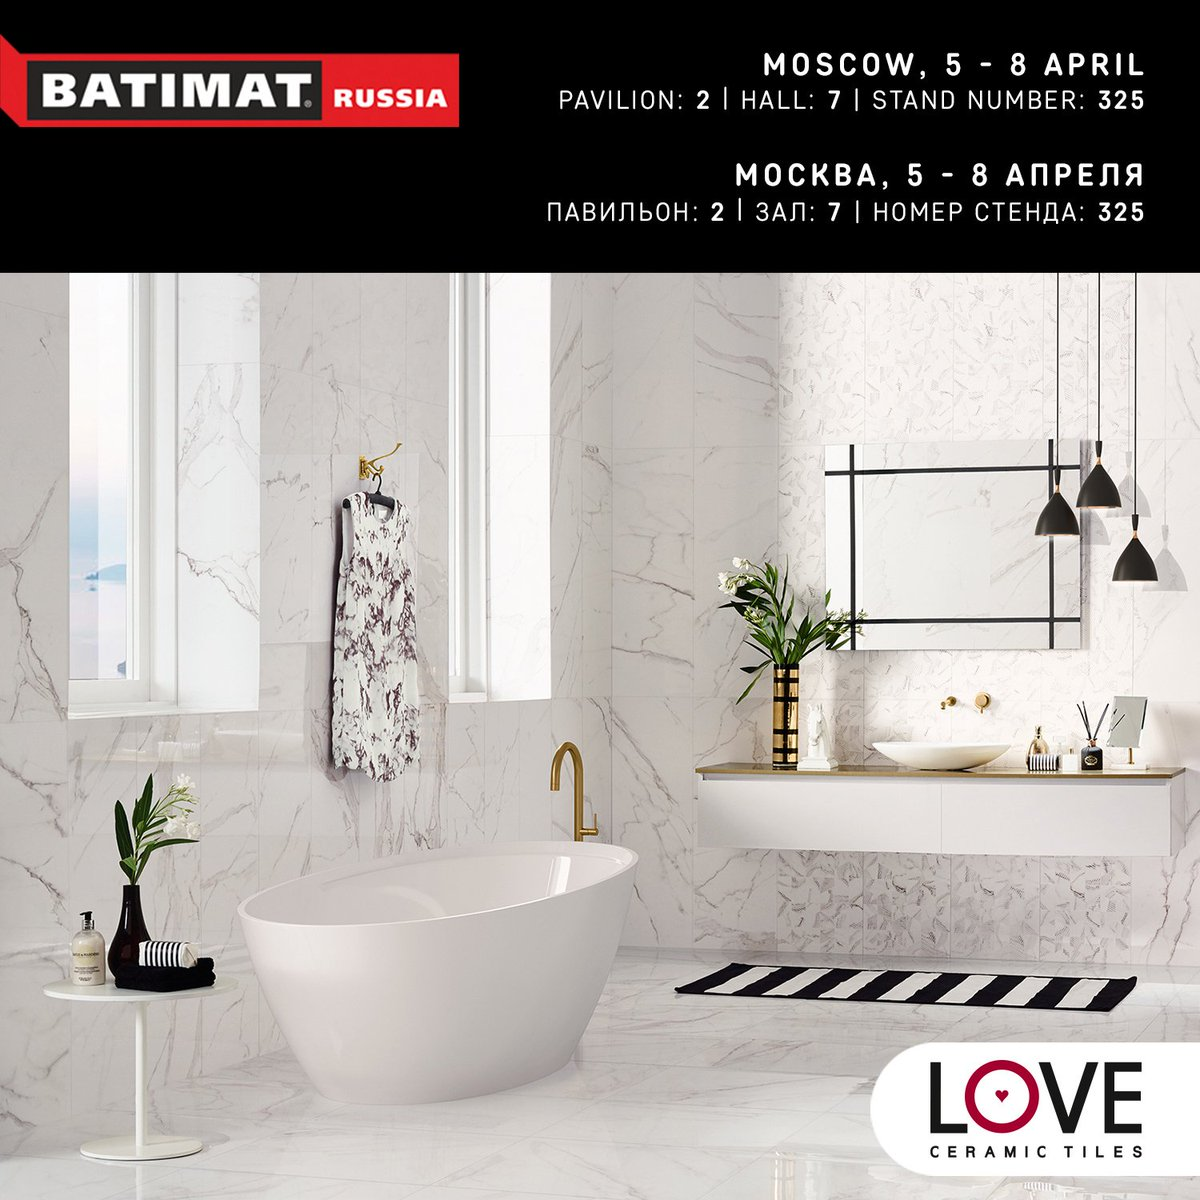 Love Ceramic Tiles On Twitter Love Tiles Will Be Present At The